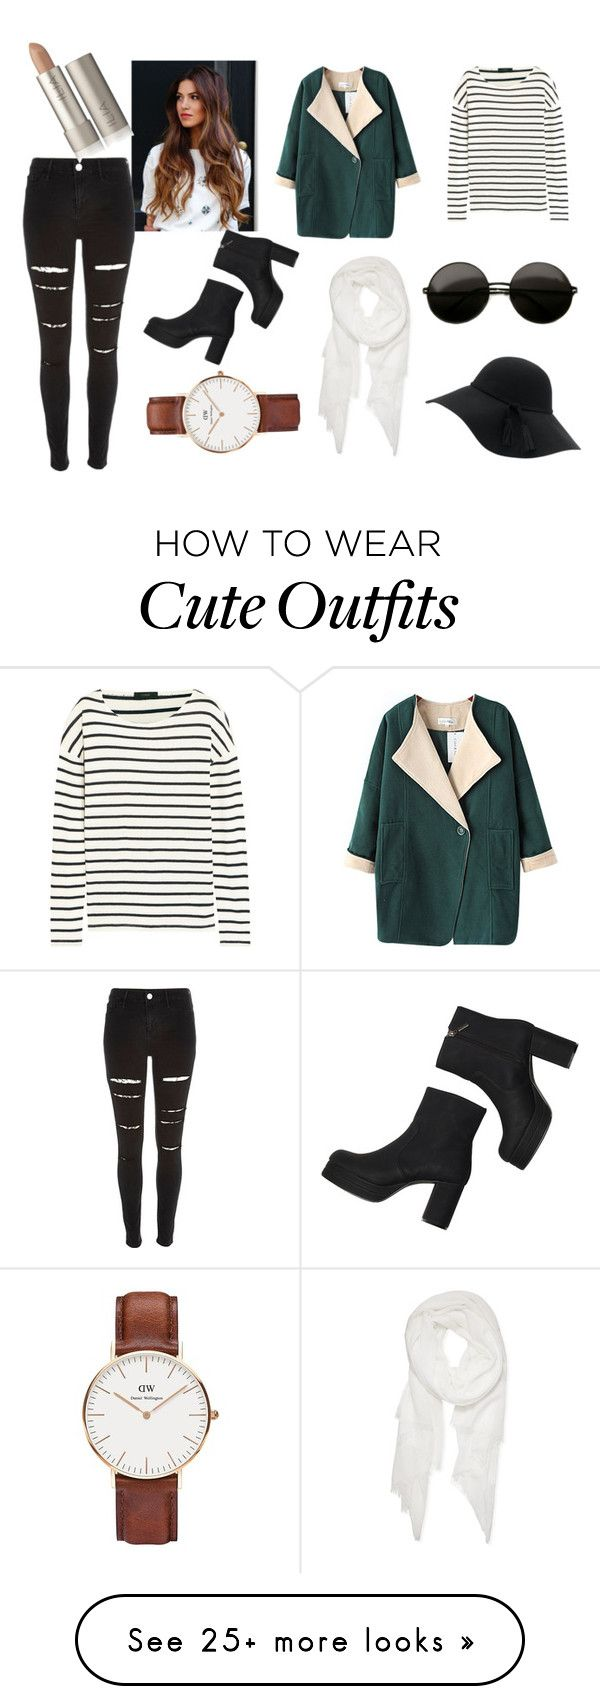 """""""cute outfit for cold"""" by laurahonner on Polyvore featuring J.Crew, Chicnova Fashion, Monki, River Island, Calvin Klein and Daniel Wellington"""